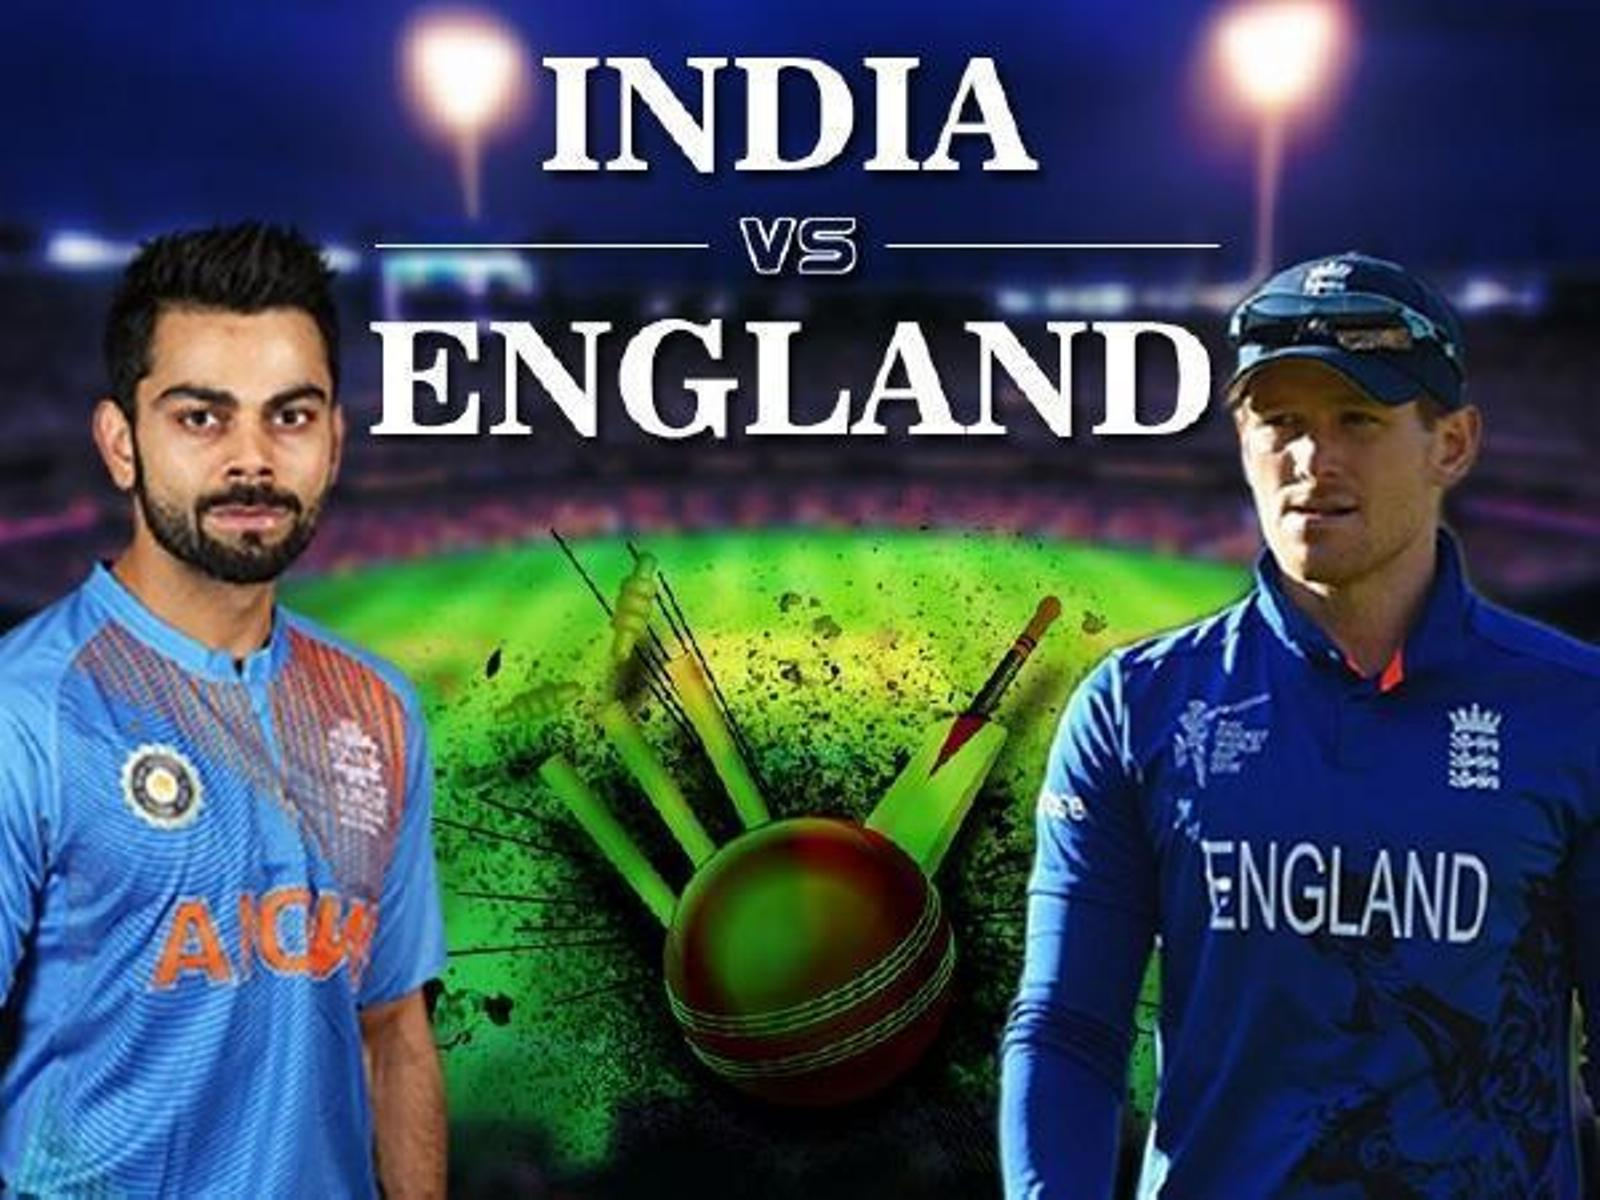 11 Cricket World Cup 2019 – India Vs England Instagram Captions!